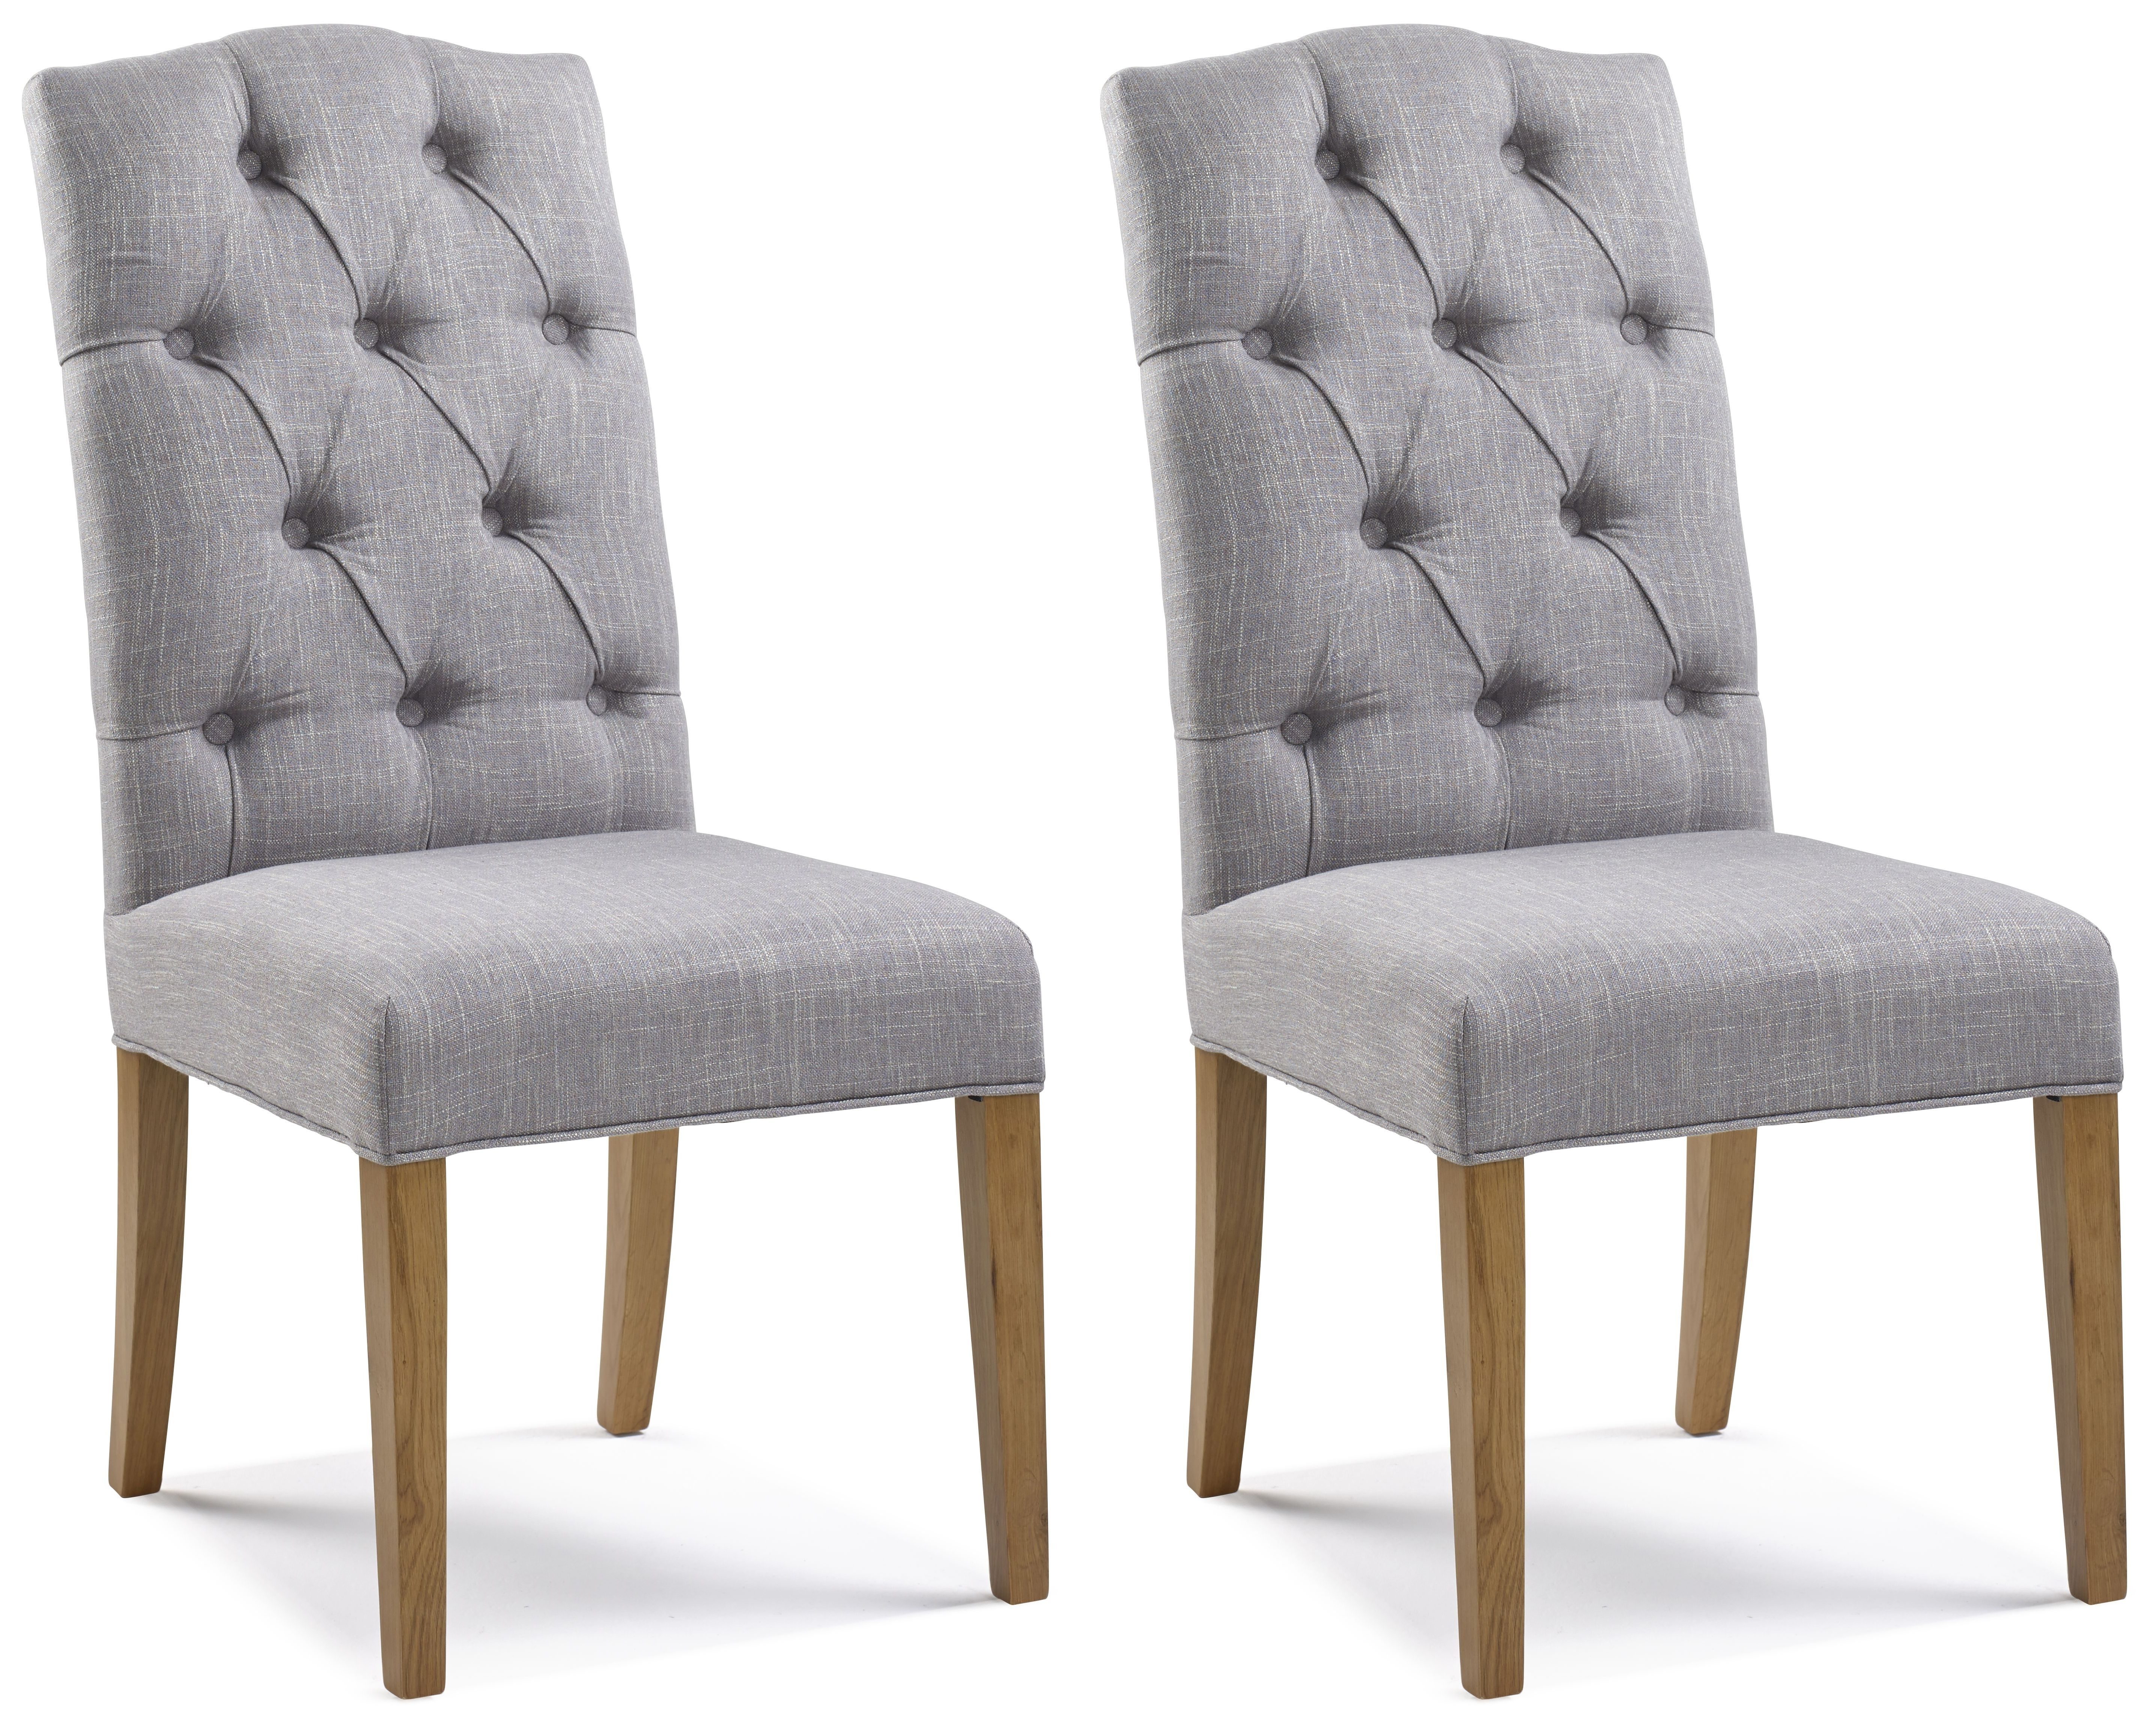 Paterson Arch Top Grey Button Back Dining Chair (Pair)